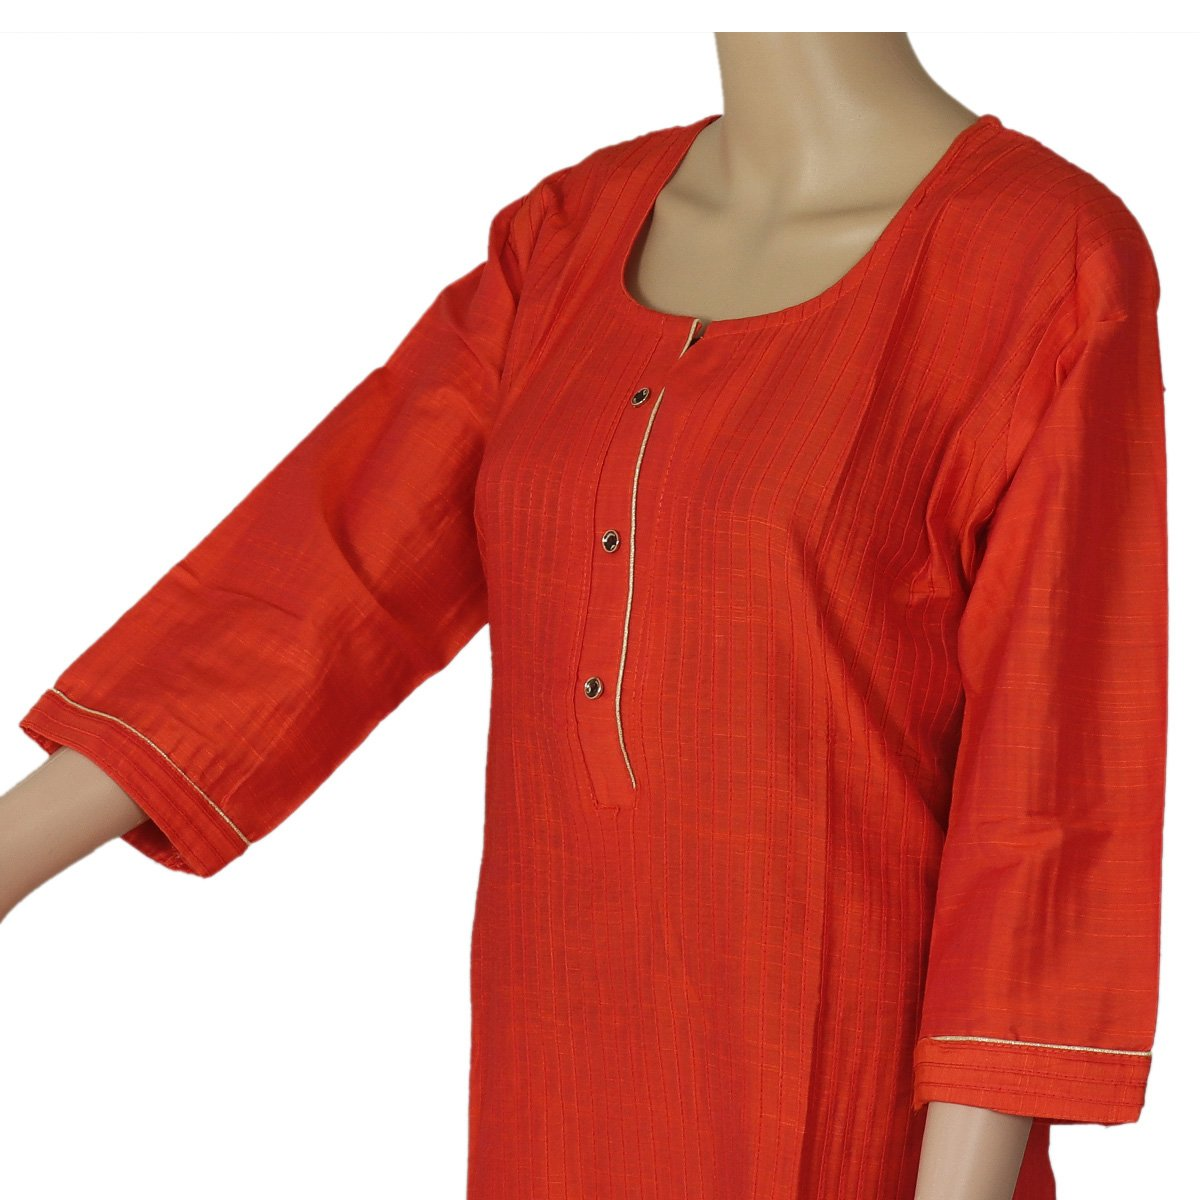 Raw Silk Kurta Orange with Buttons and Simple design